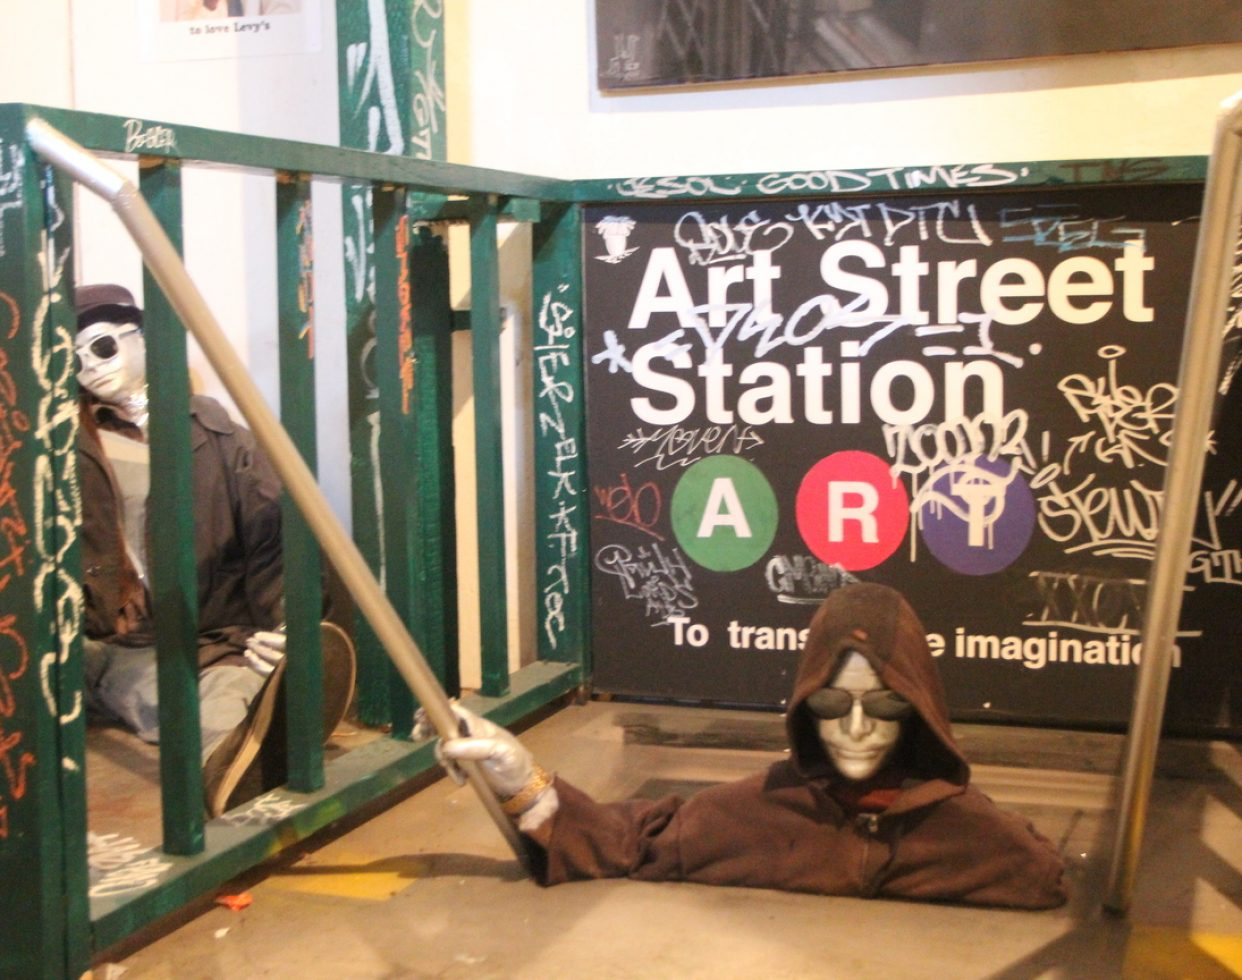 A New York City subway-like installation at ArtStreet (Photo by Sami Soto)